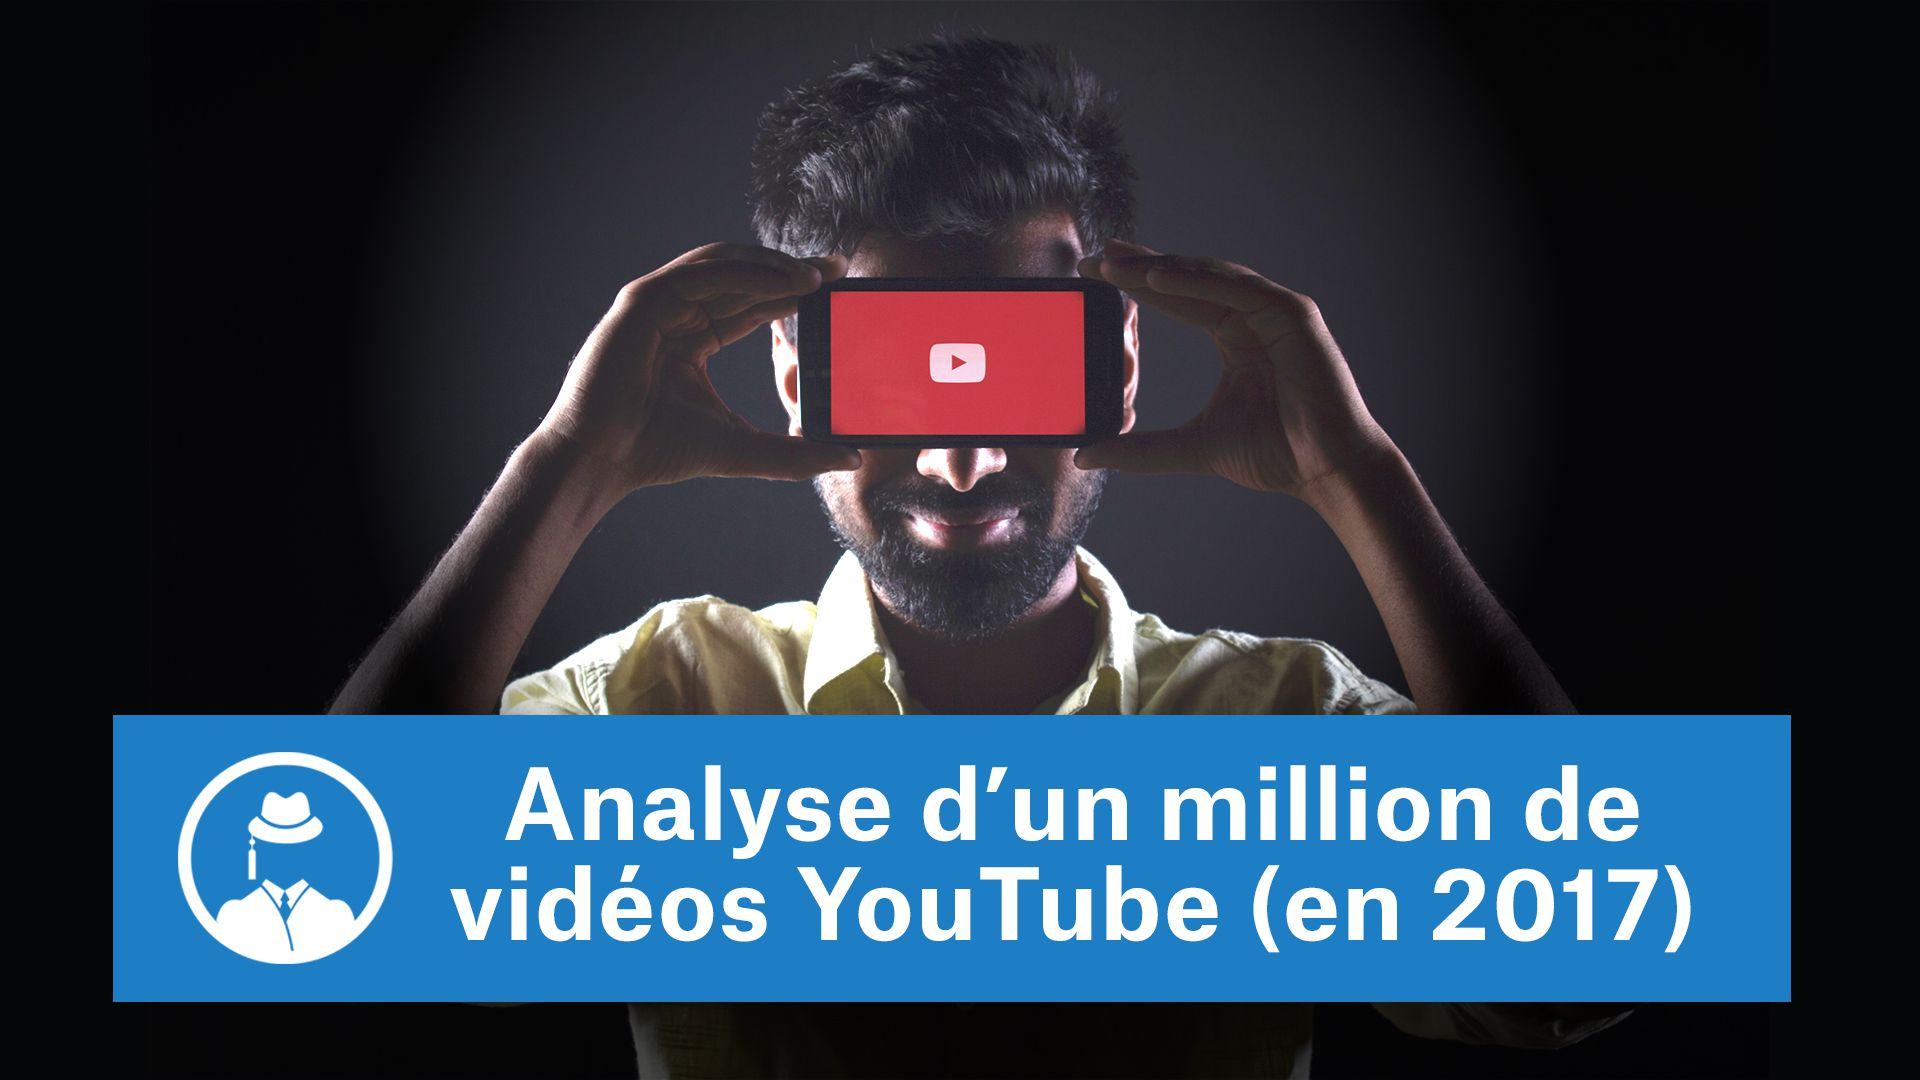 Analyse d'un millions de vidéos YouTube (en 2017) #GrowthHacking #WebMarketing #FormationGrowthHacking #CentreDeFormationFrance #TunnelAARRR #AARRR #SocialMedia #CommunityManagement #SEO #MarketingDigital #SiteWeb #YouTubeSEO #YouTube